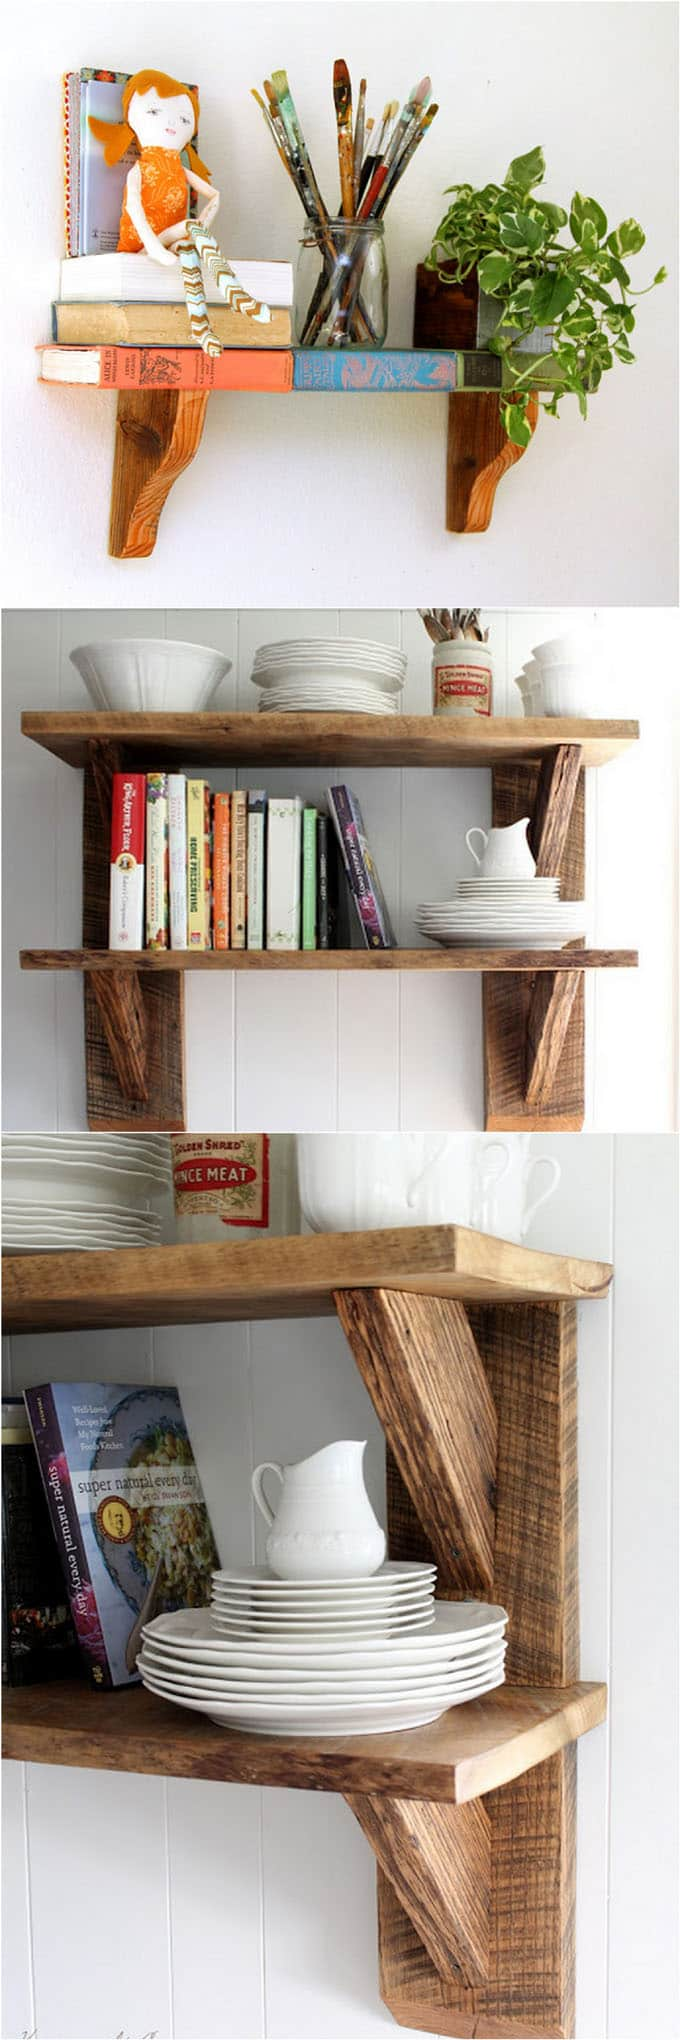 easy tutorials on building beautiful floating shelves and wall shelves ...